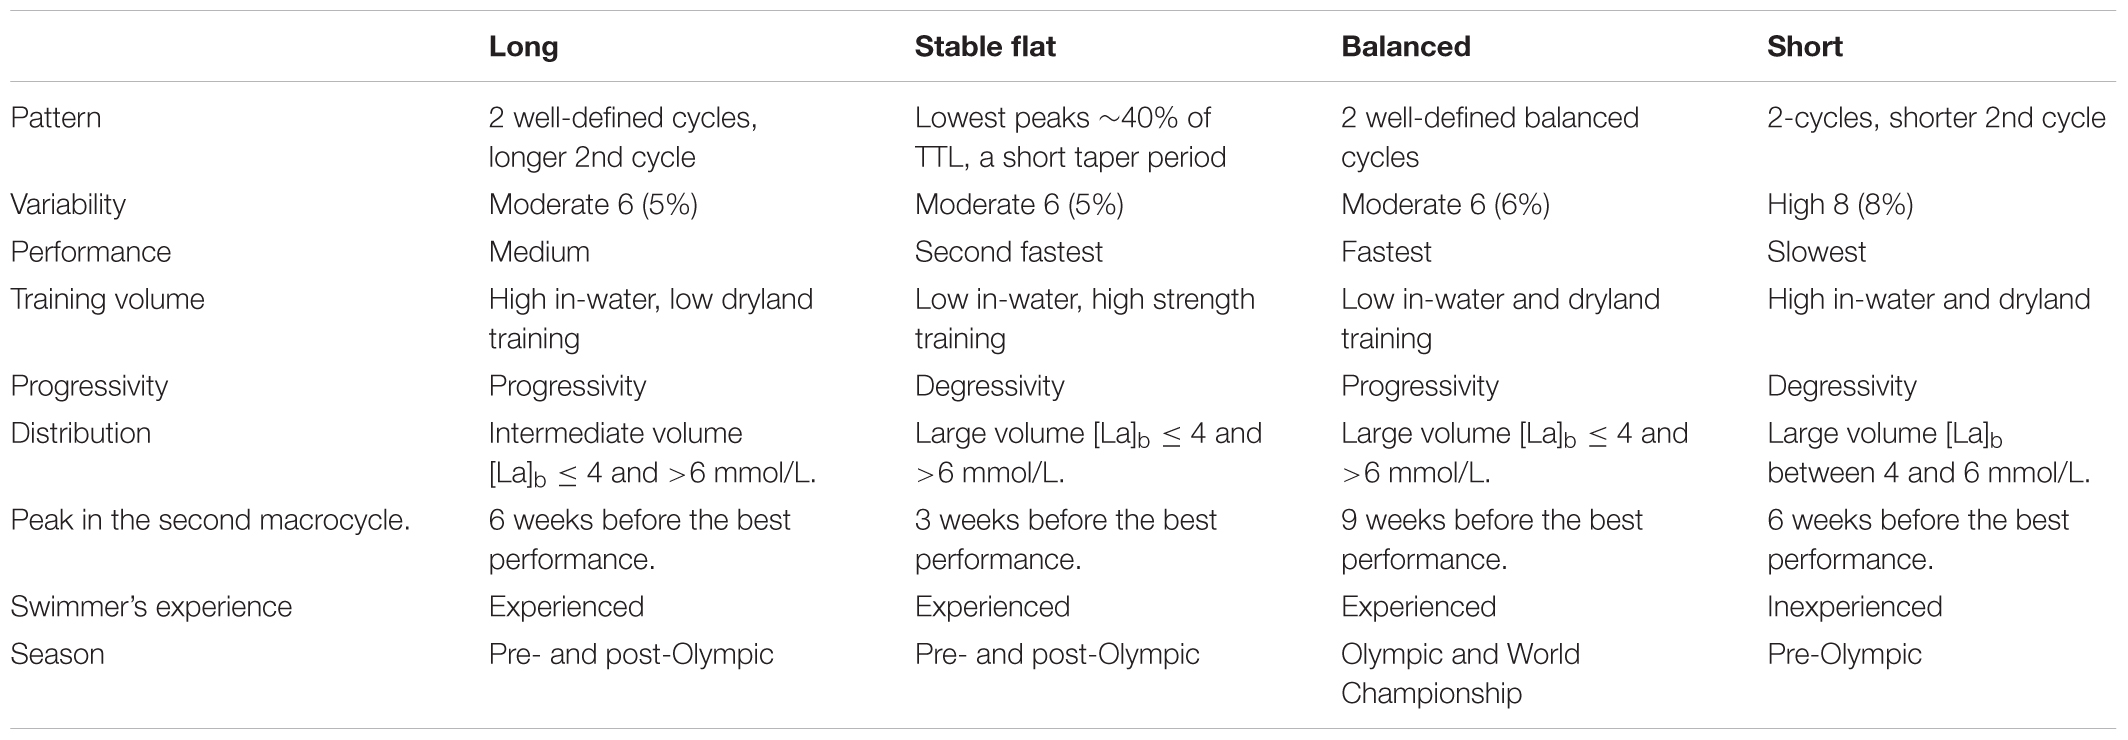 Frontiers | Elite Swimmers' Training Patterns in the 25 Weeks Prior